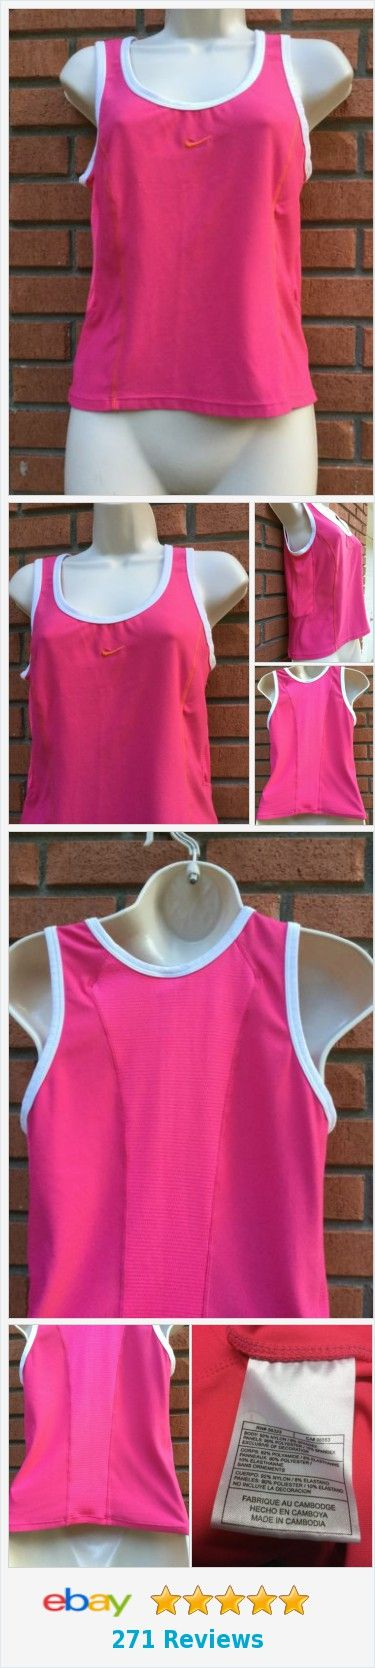 Nike Small 4-6 Dri Fit Sleeveless Pink Vented Workout Top ..EUC  | eBay http://www.ebay.com/itm/Nike-Small-4-6-Dri-Fit-Sleeveless-Pink-Vented-Workout-Top-EUC-/222447255415?ssPageName=STRK:MESE:IT